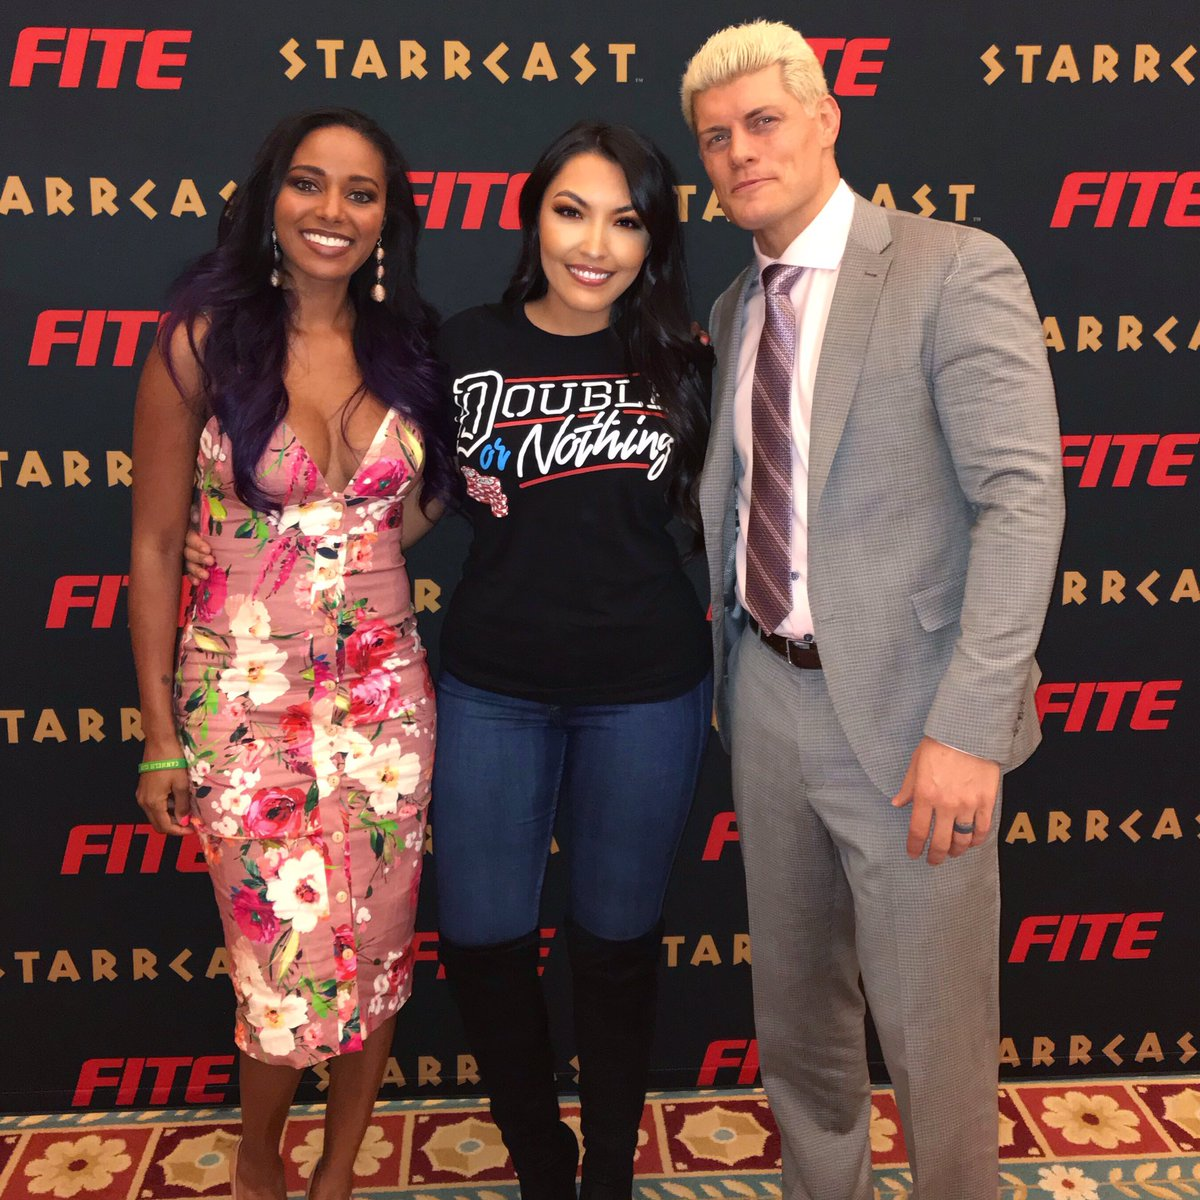 The power couple! It was so great to meet these two! Big congratulations to them and the AEW company! You guys have changed my outlook on wrestling this weekend and I am forever grateful! I really look up to these two and I can't wait to see what the future holds! #AEW